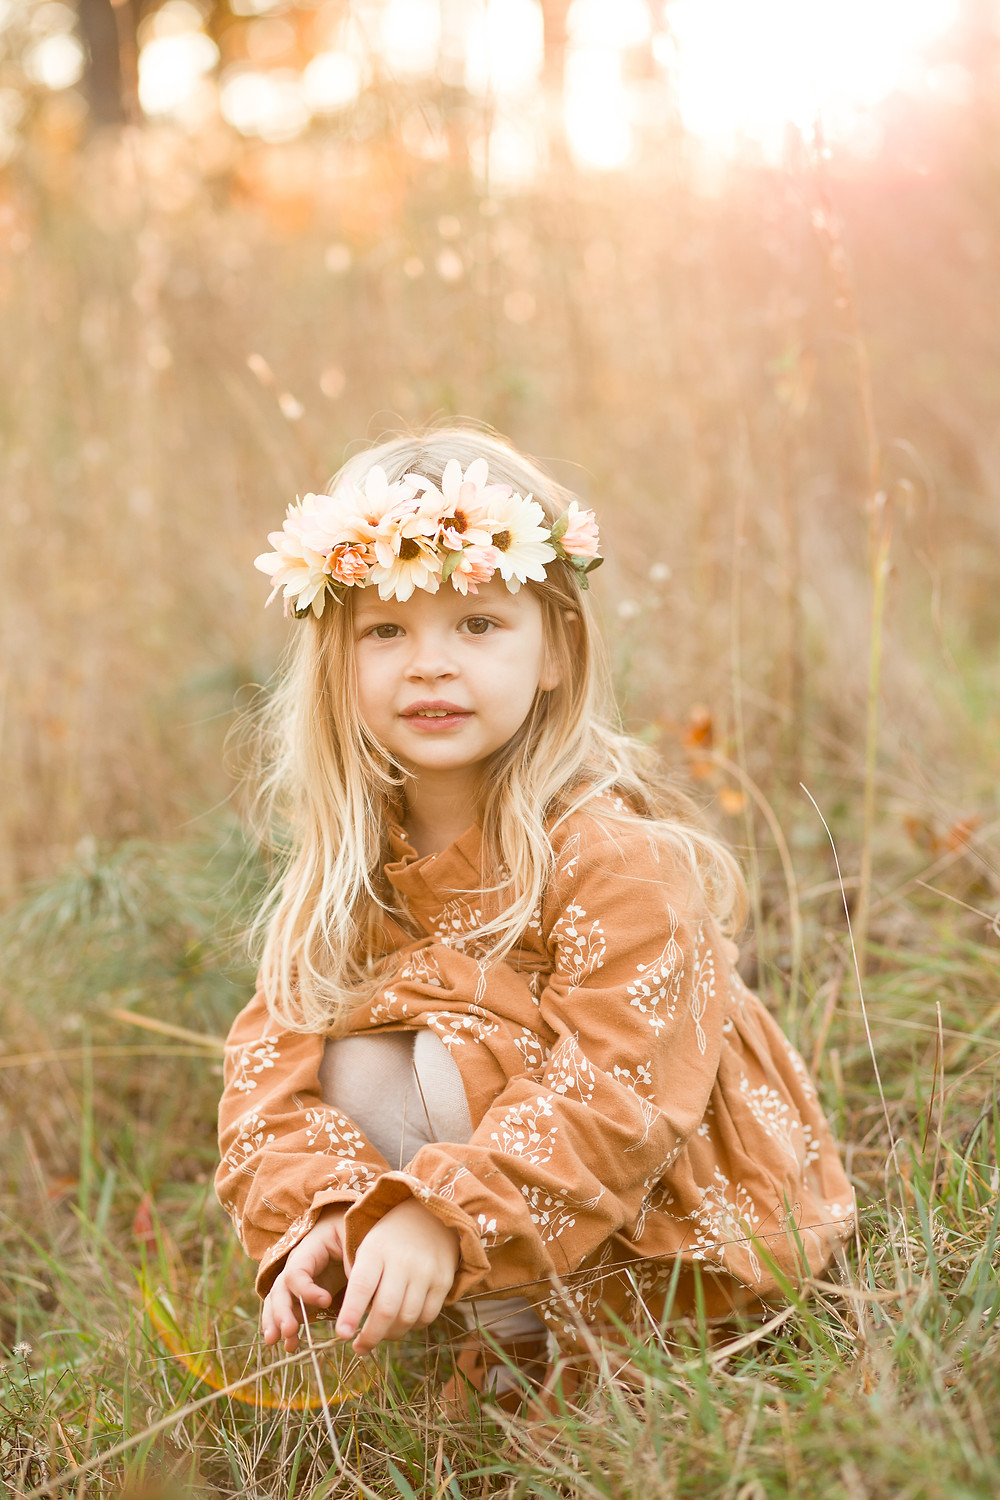 Little girl in a flower crown kneels down in a grassy field, London Adelaide family photography, Asheville family photographers, tips for planning family photos, lifestyle blog